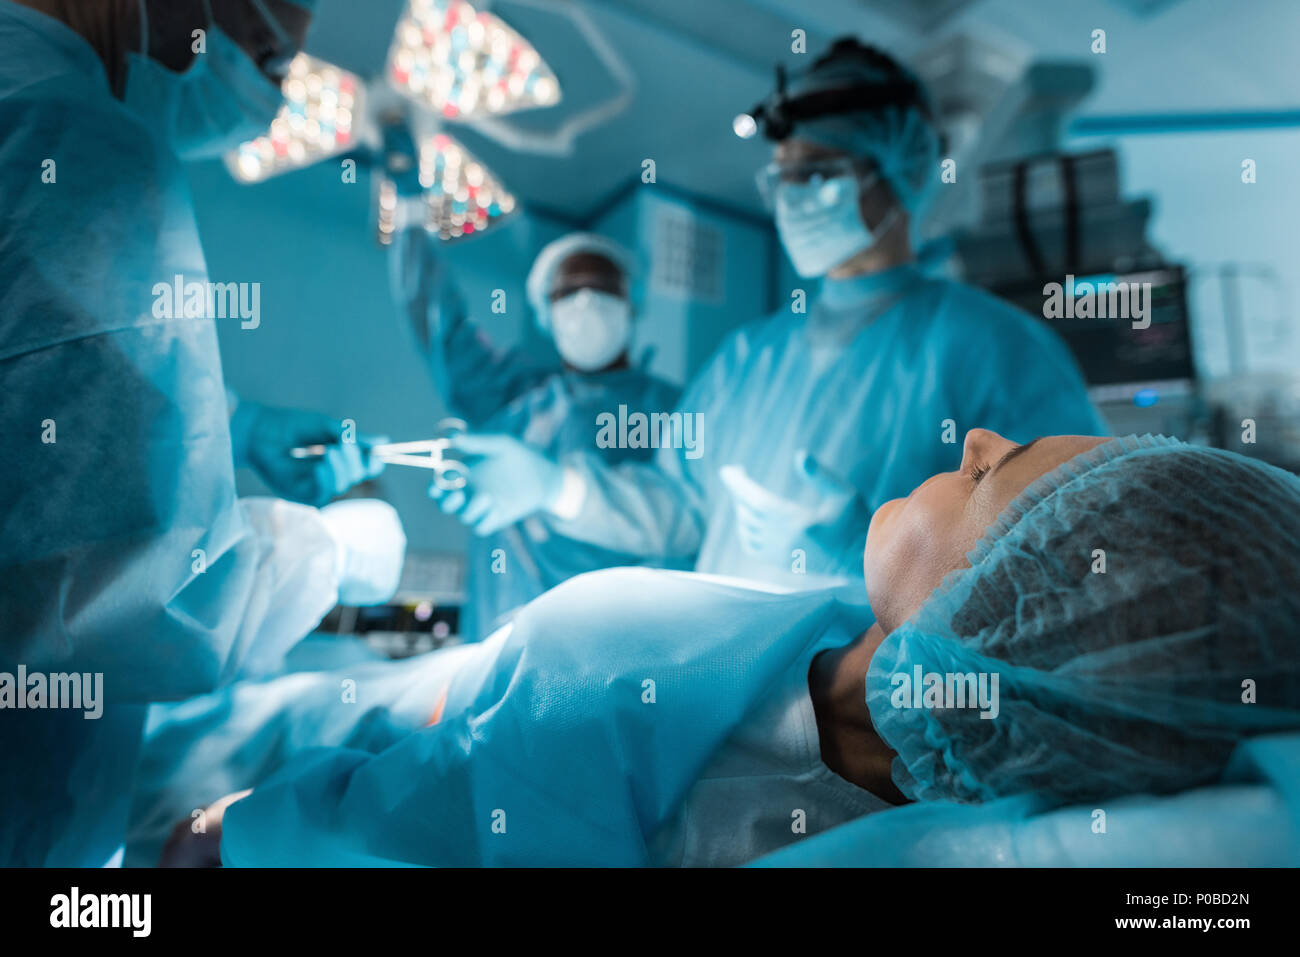 patient lying on operating table during surgery - Stock Image